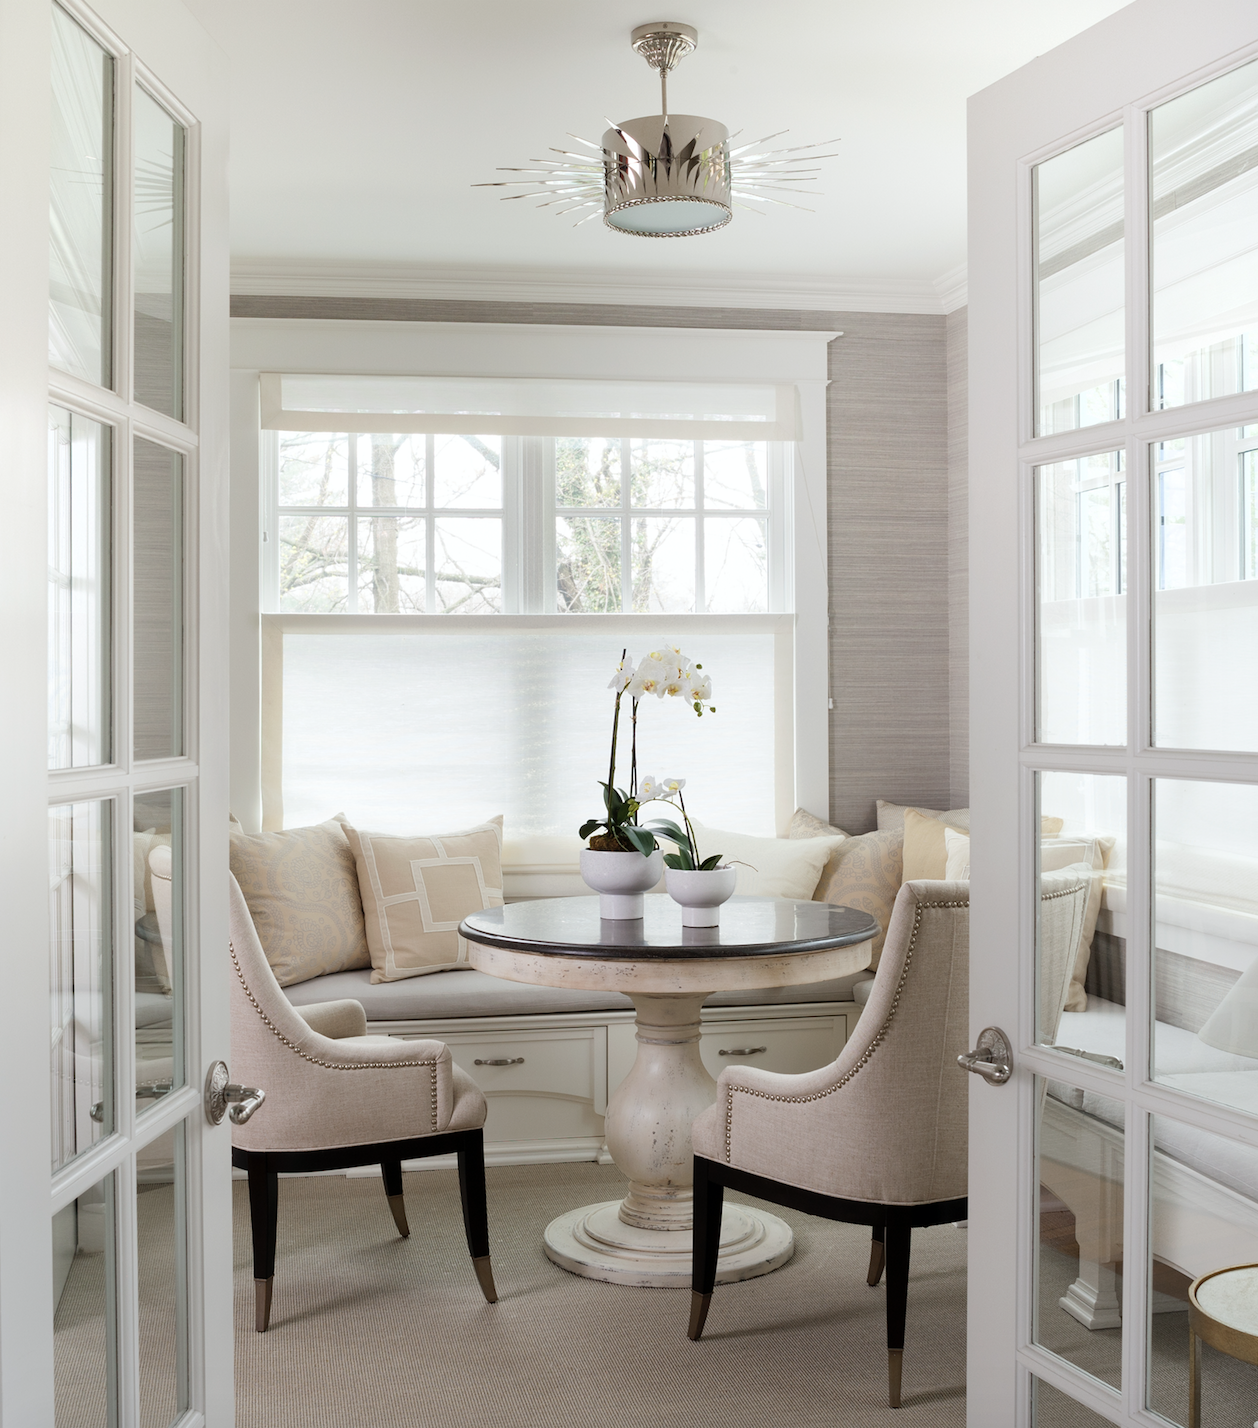 Full Service Interior Design - Hourly at $225/hourAfter the Design Consultation, you can hire Breeze Giannasio Interiors for Full Service Interior Design. This luxury service provides all of the elements needed to complete your entire home or fully furnish rooms in your home.